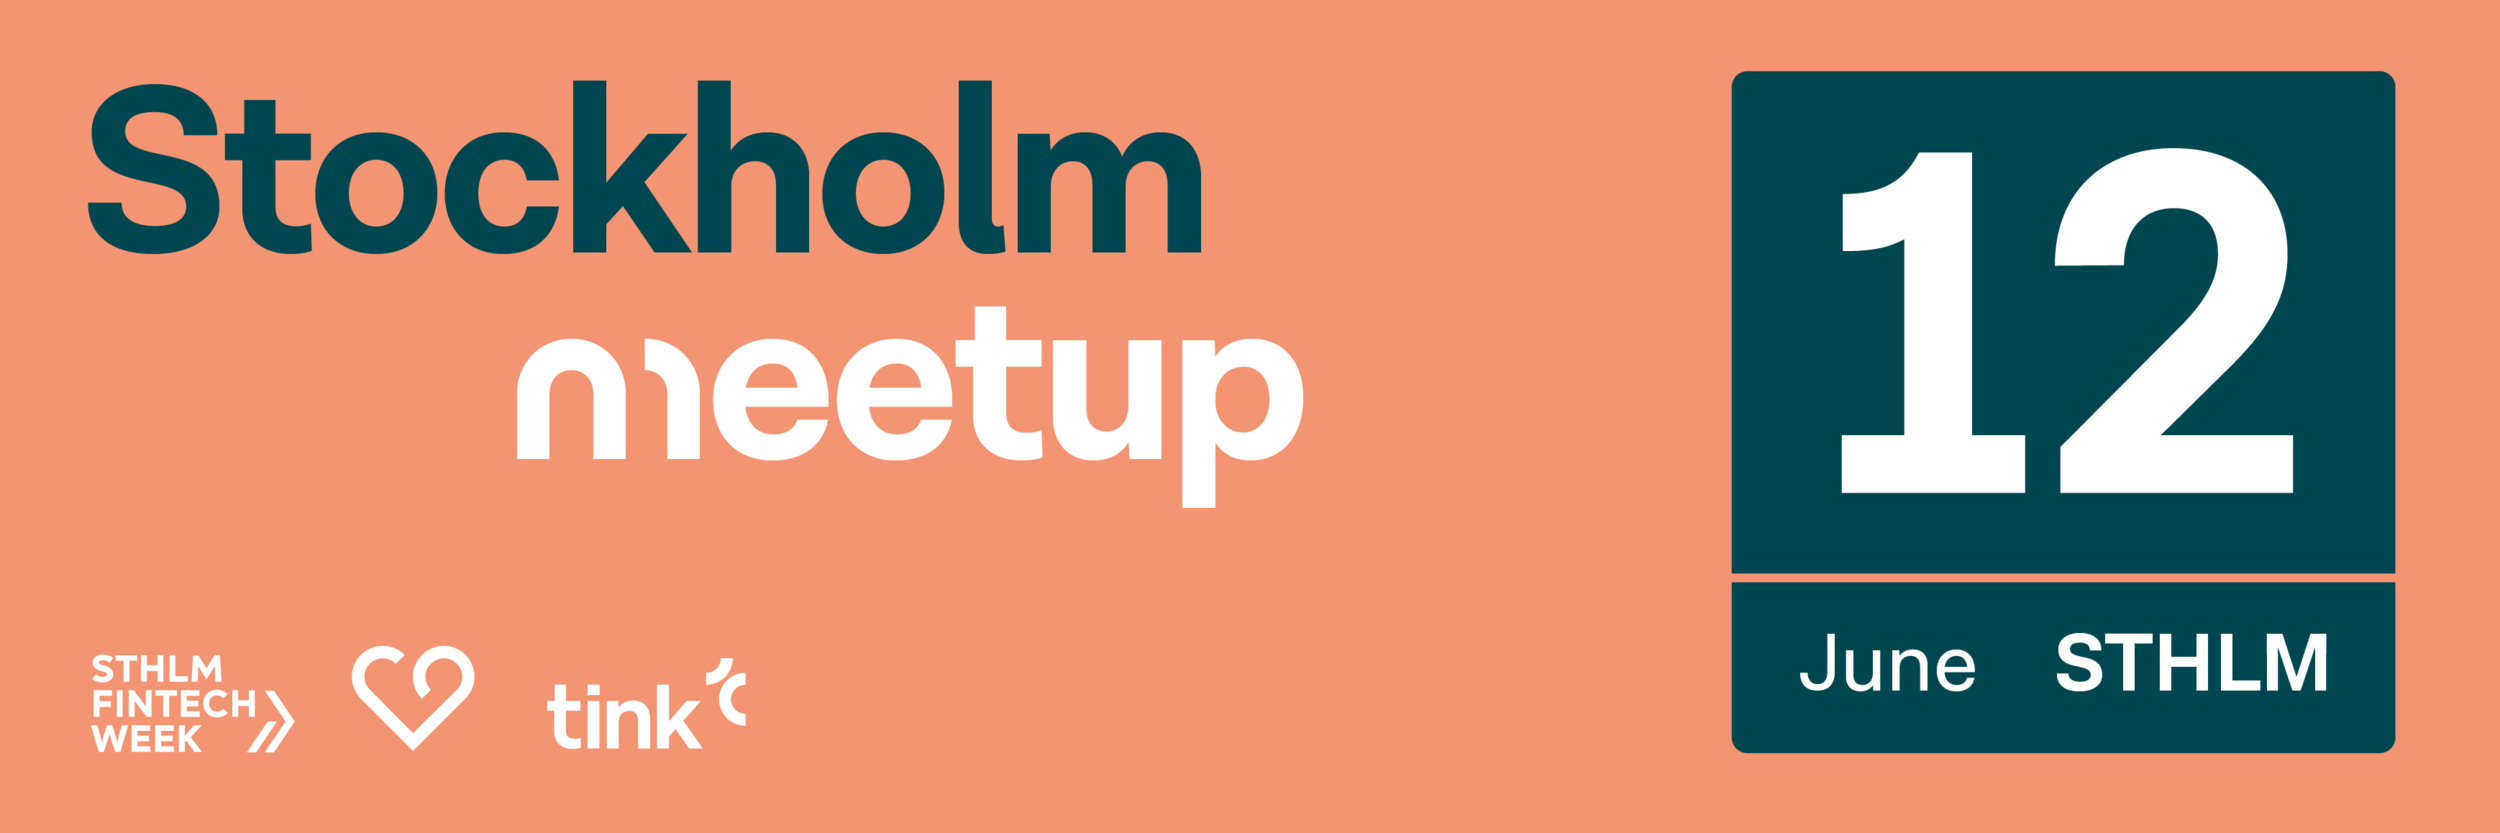 meetup_stockholm-post.png